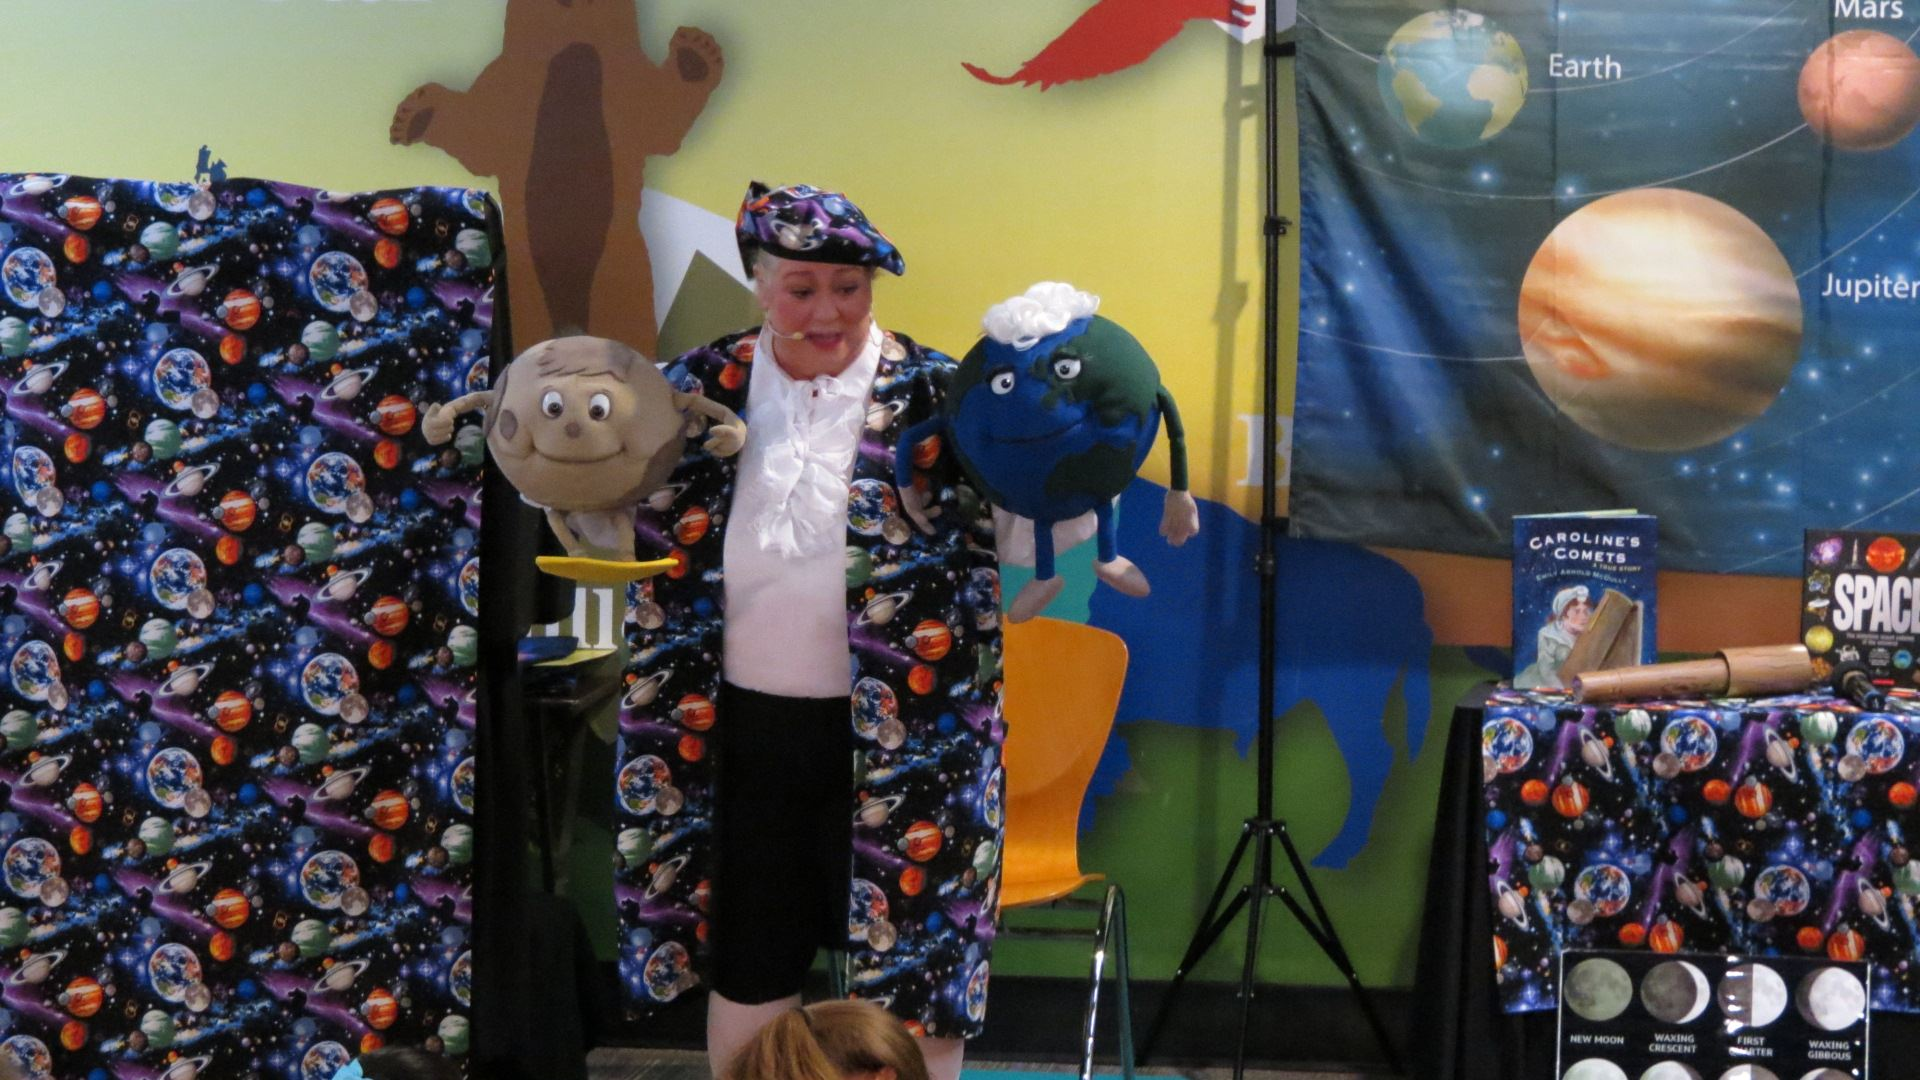 Margret Clowder with Earth and Moon puppets.